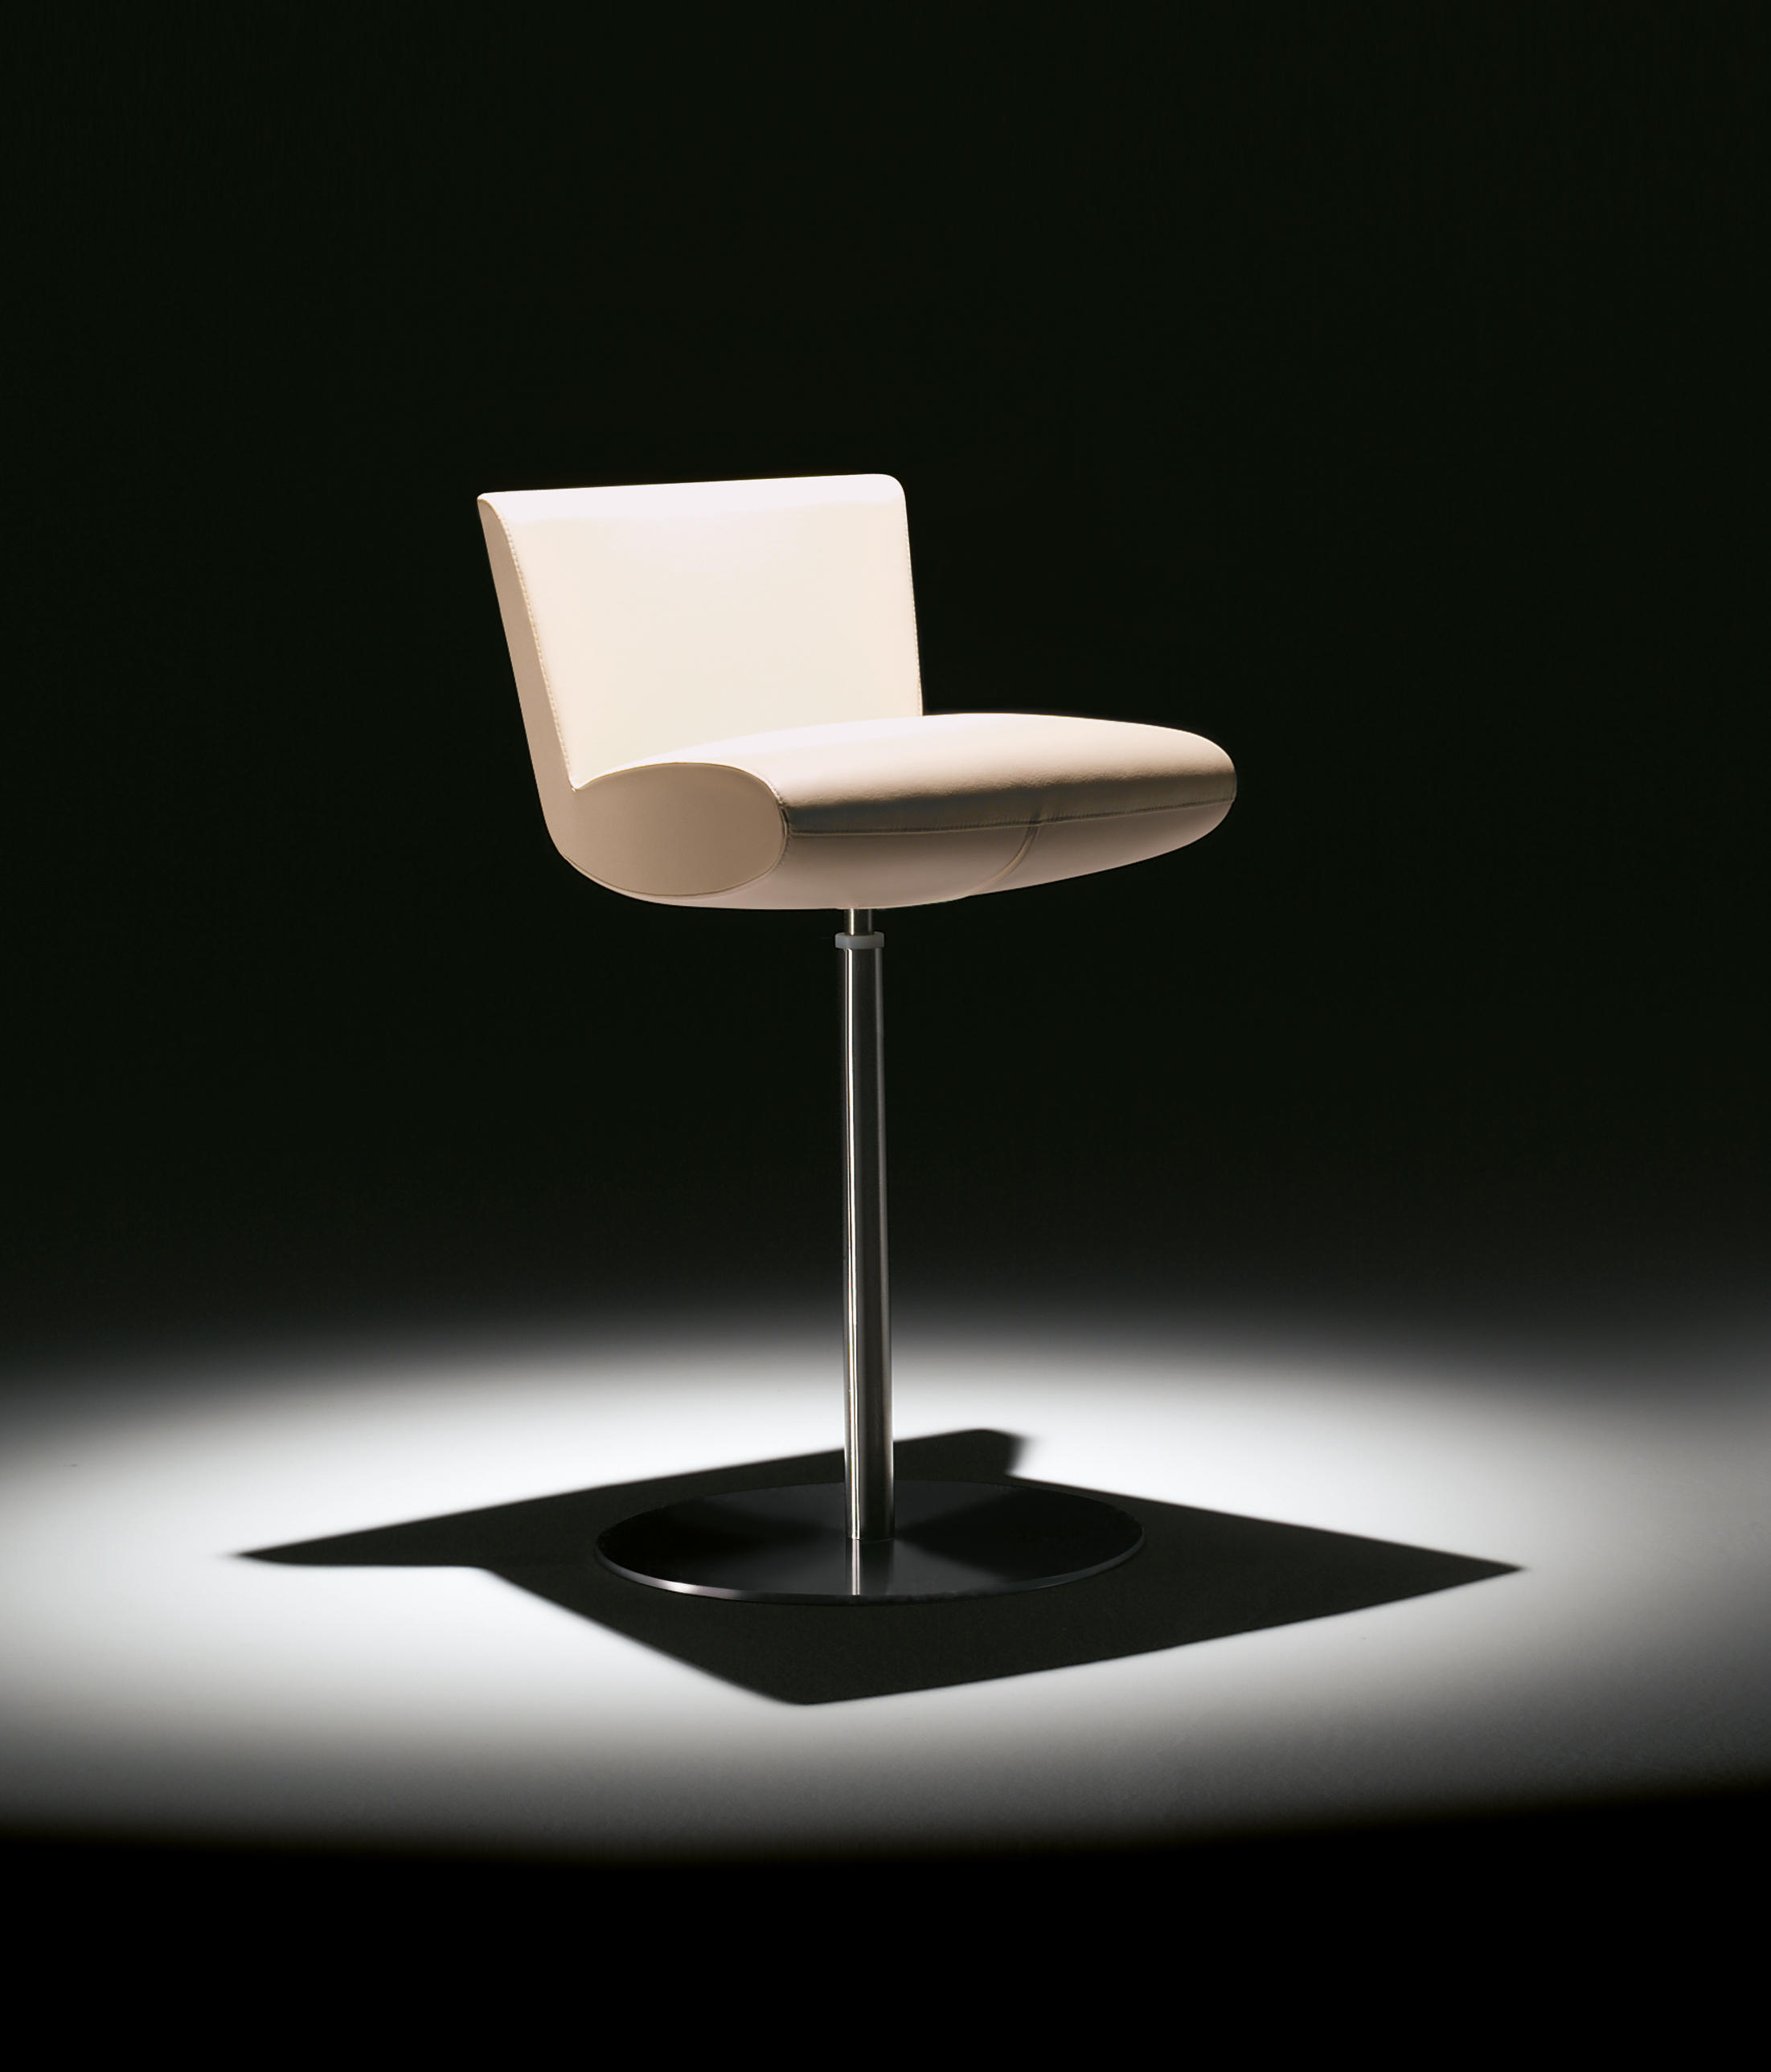 ELI S65 S78 Bar stools from MOHDO Architonic : ELISG h from www.architonic.com size 2203 x 2578 jpeg 170kB